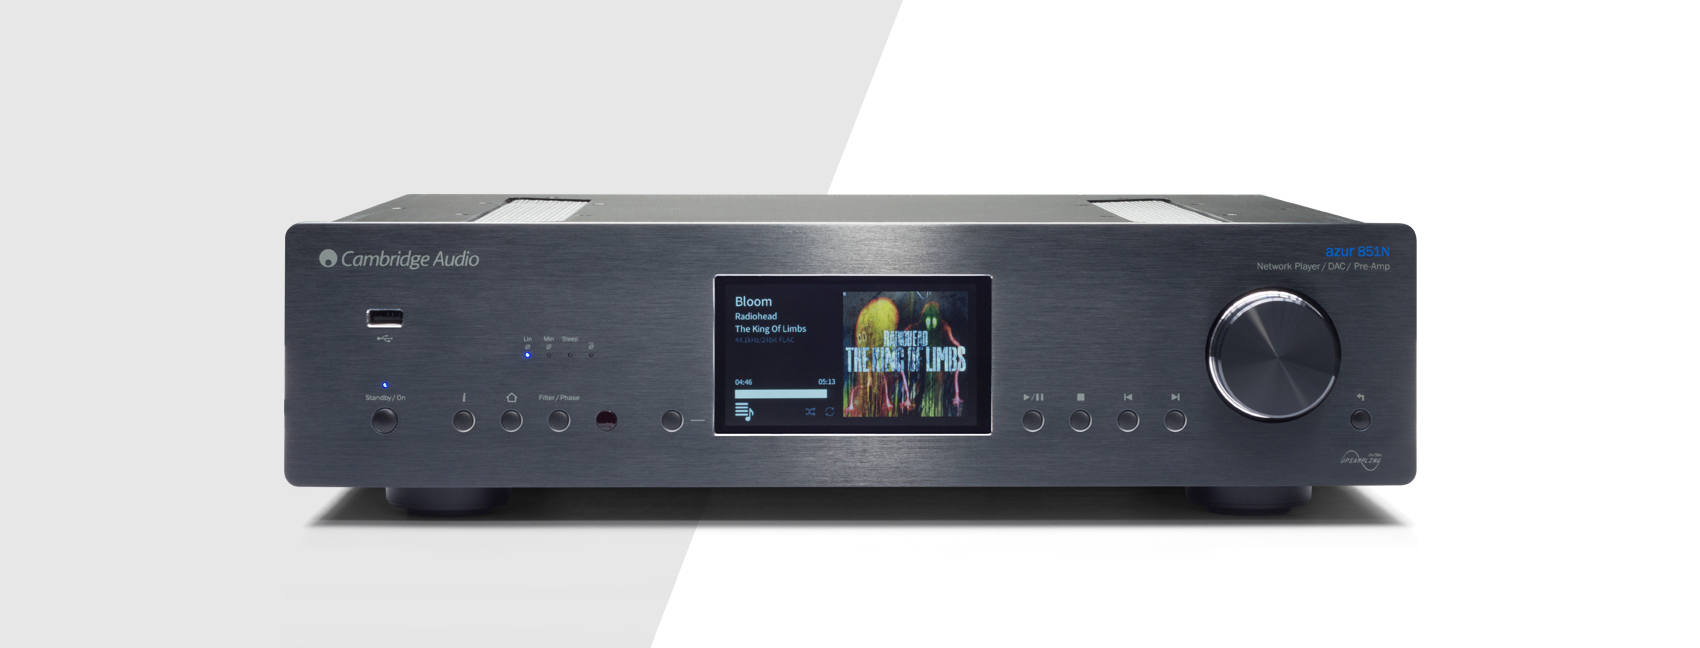 Cambridge Audio Azur 851N halozati lejatszo es dac header